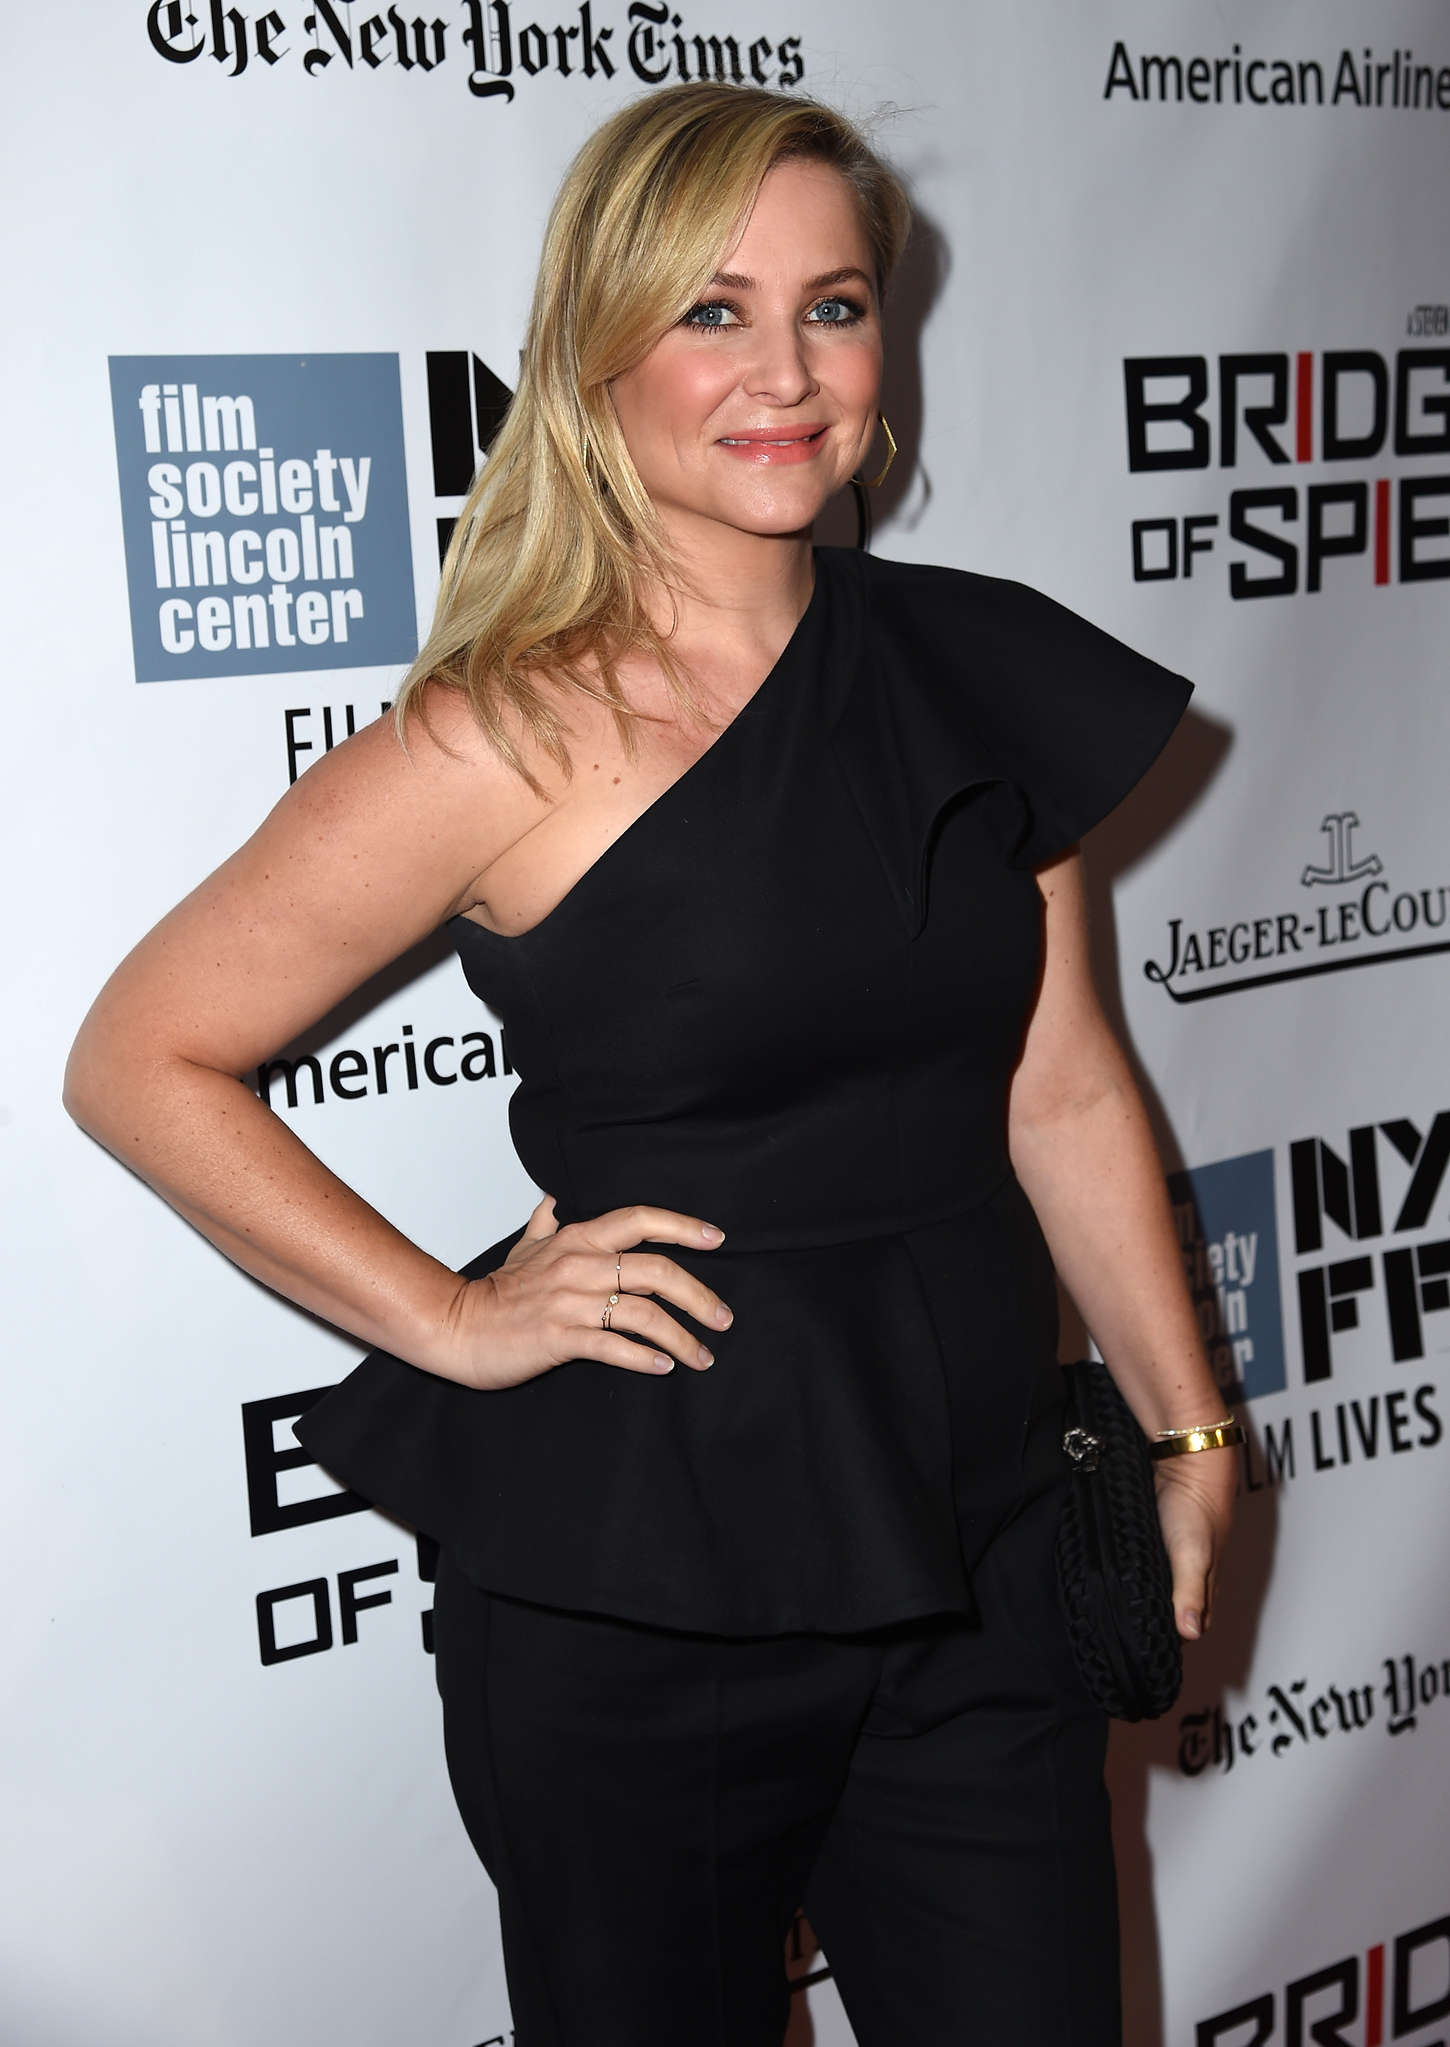 Jessica Capshaw Bridge of Spies Premiere during the New York Film Festival in New York